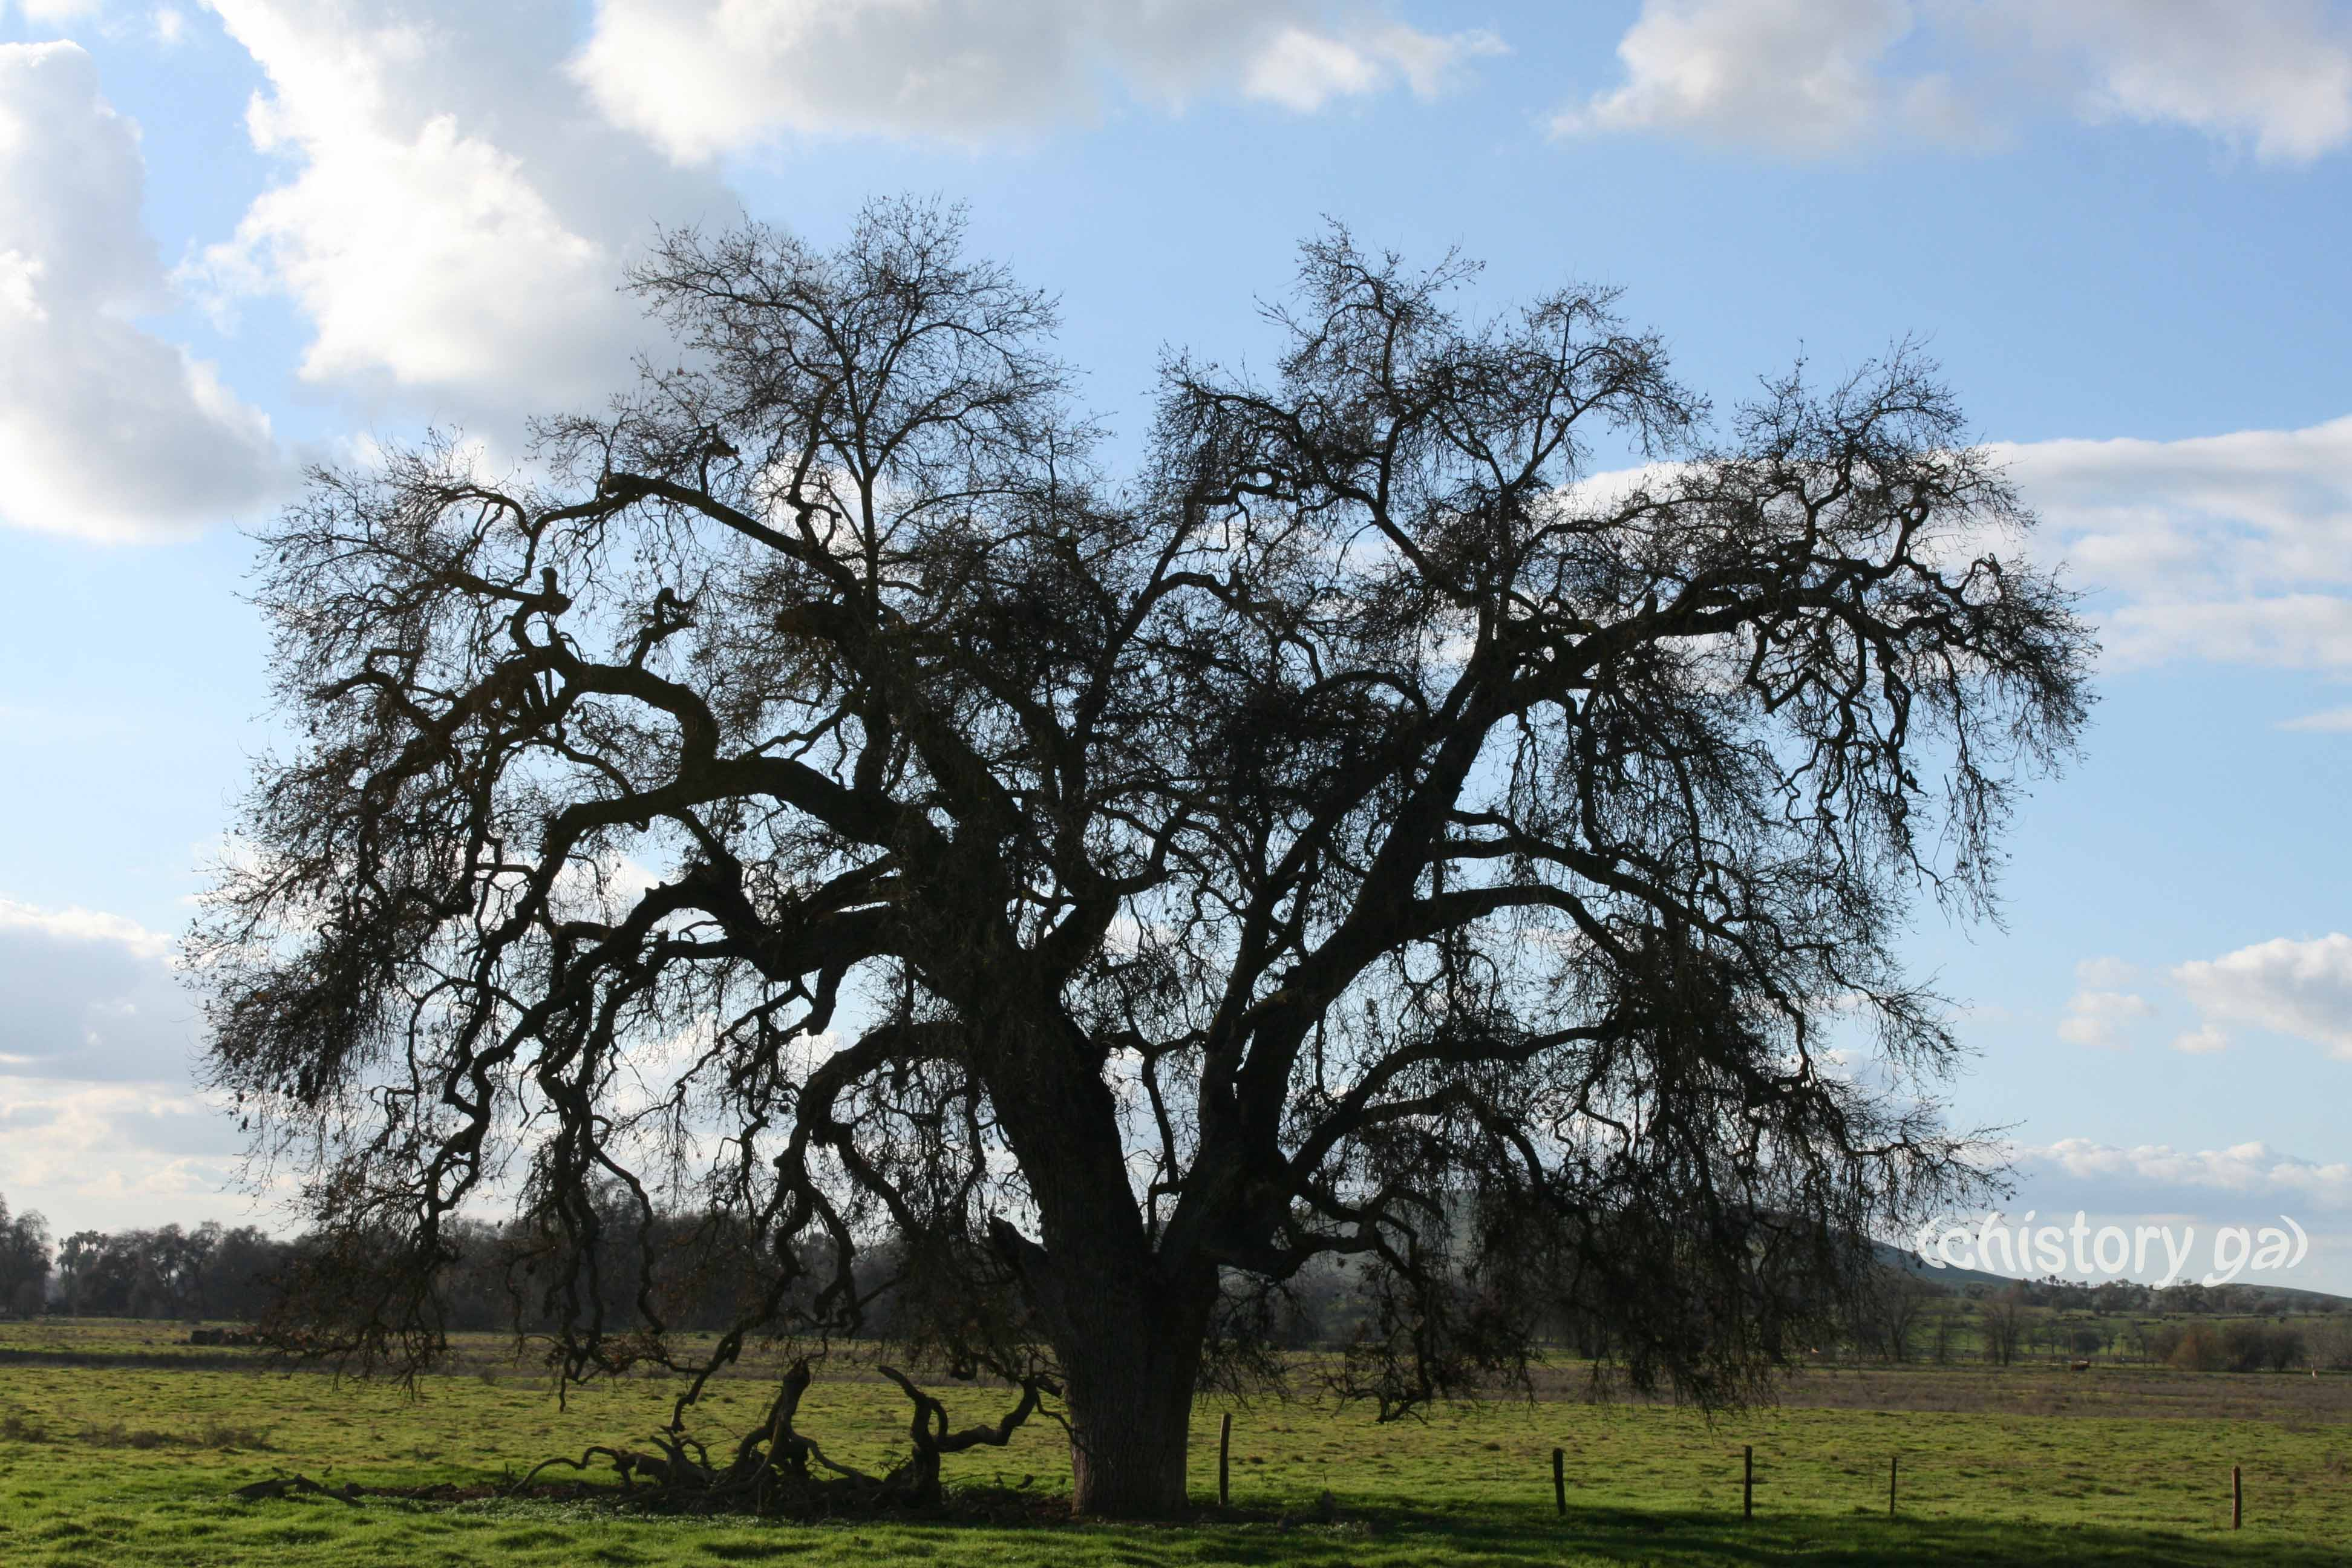 Valley Oak stands guard over grassy field where happy cows live.